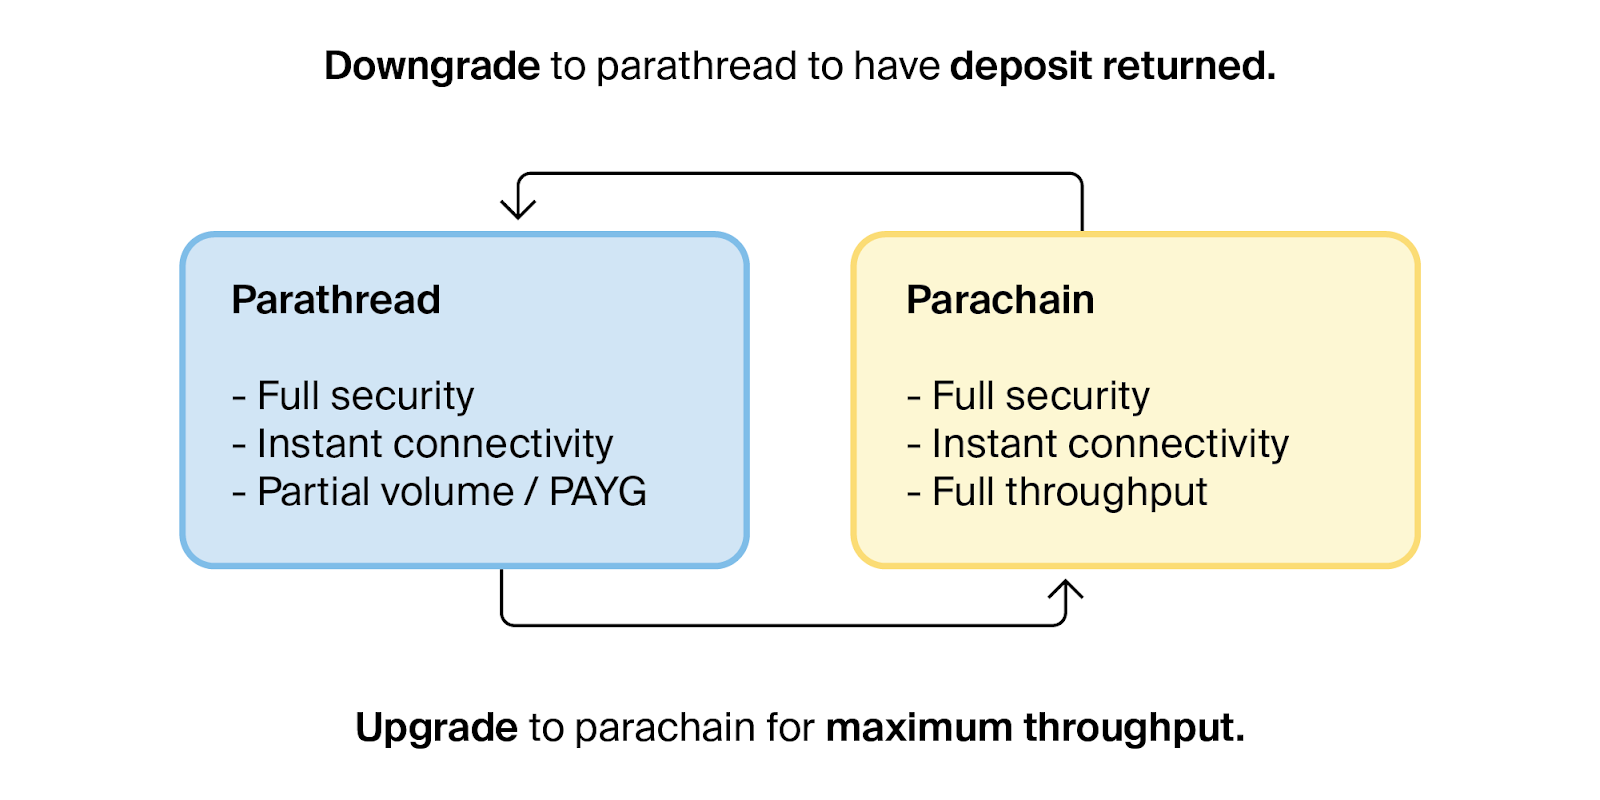 Parathreads: Pay-as-you-go Parachains - Syndicator